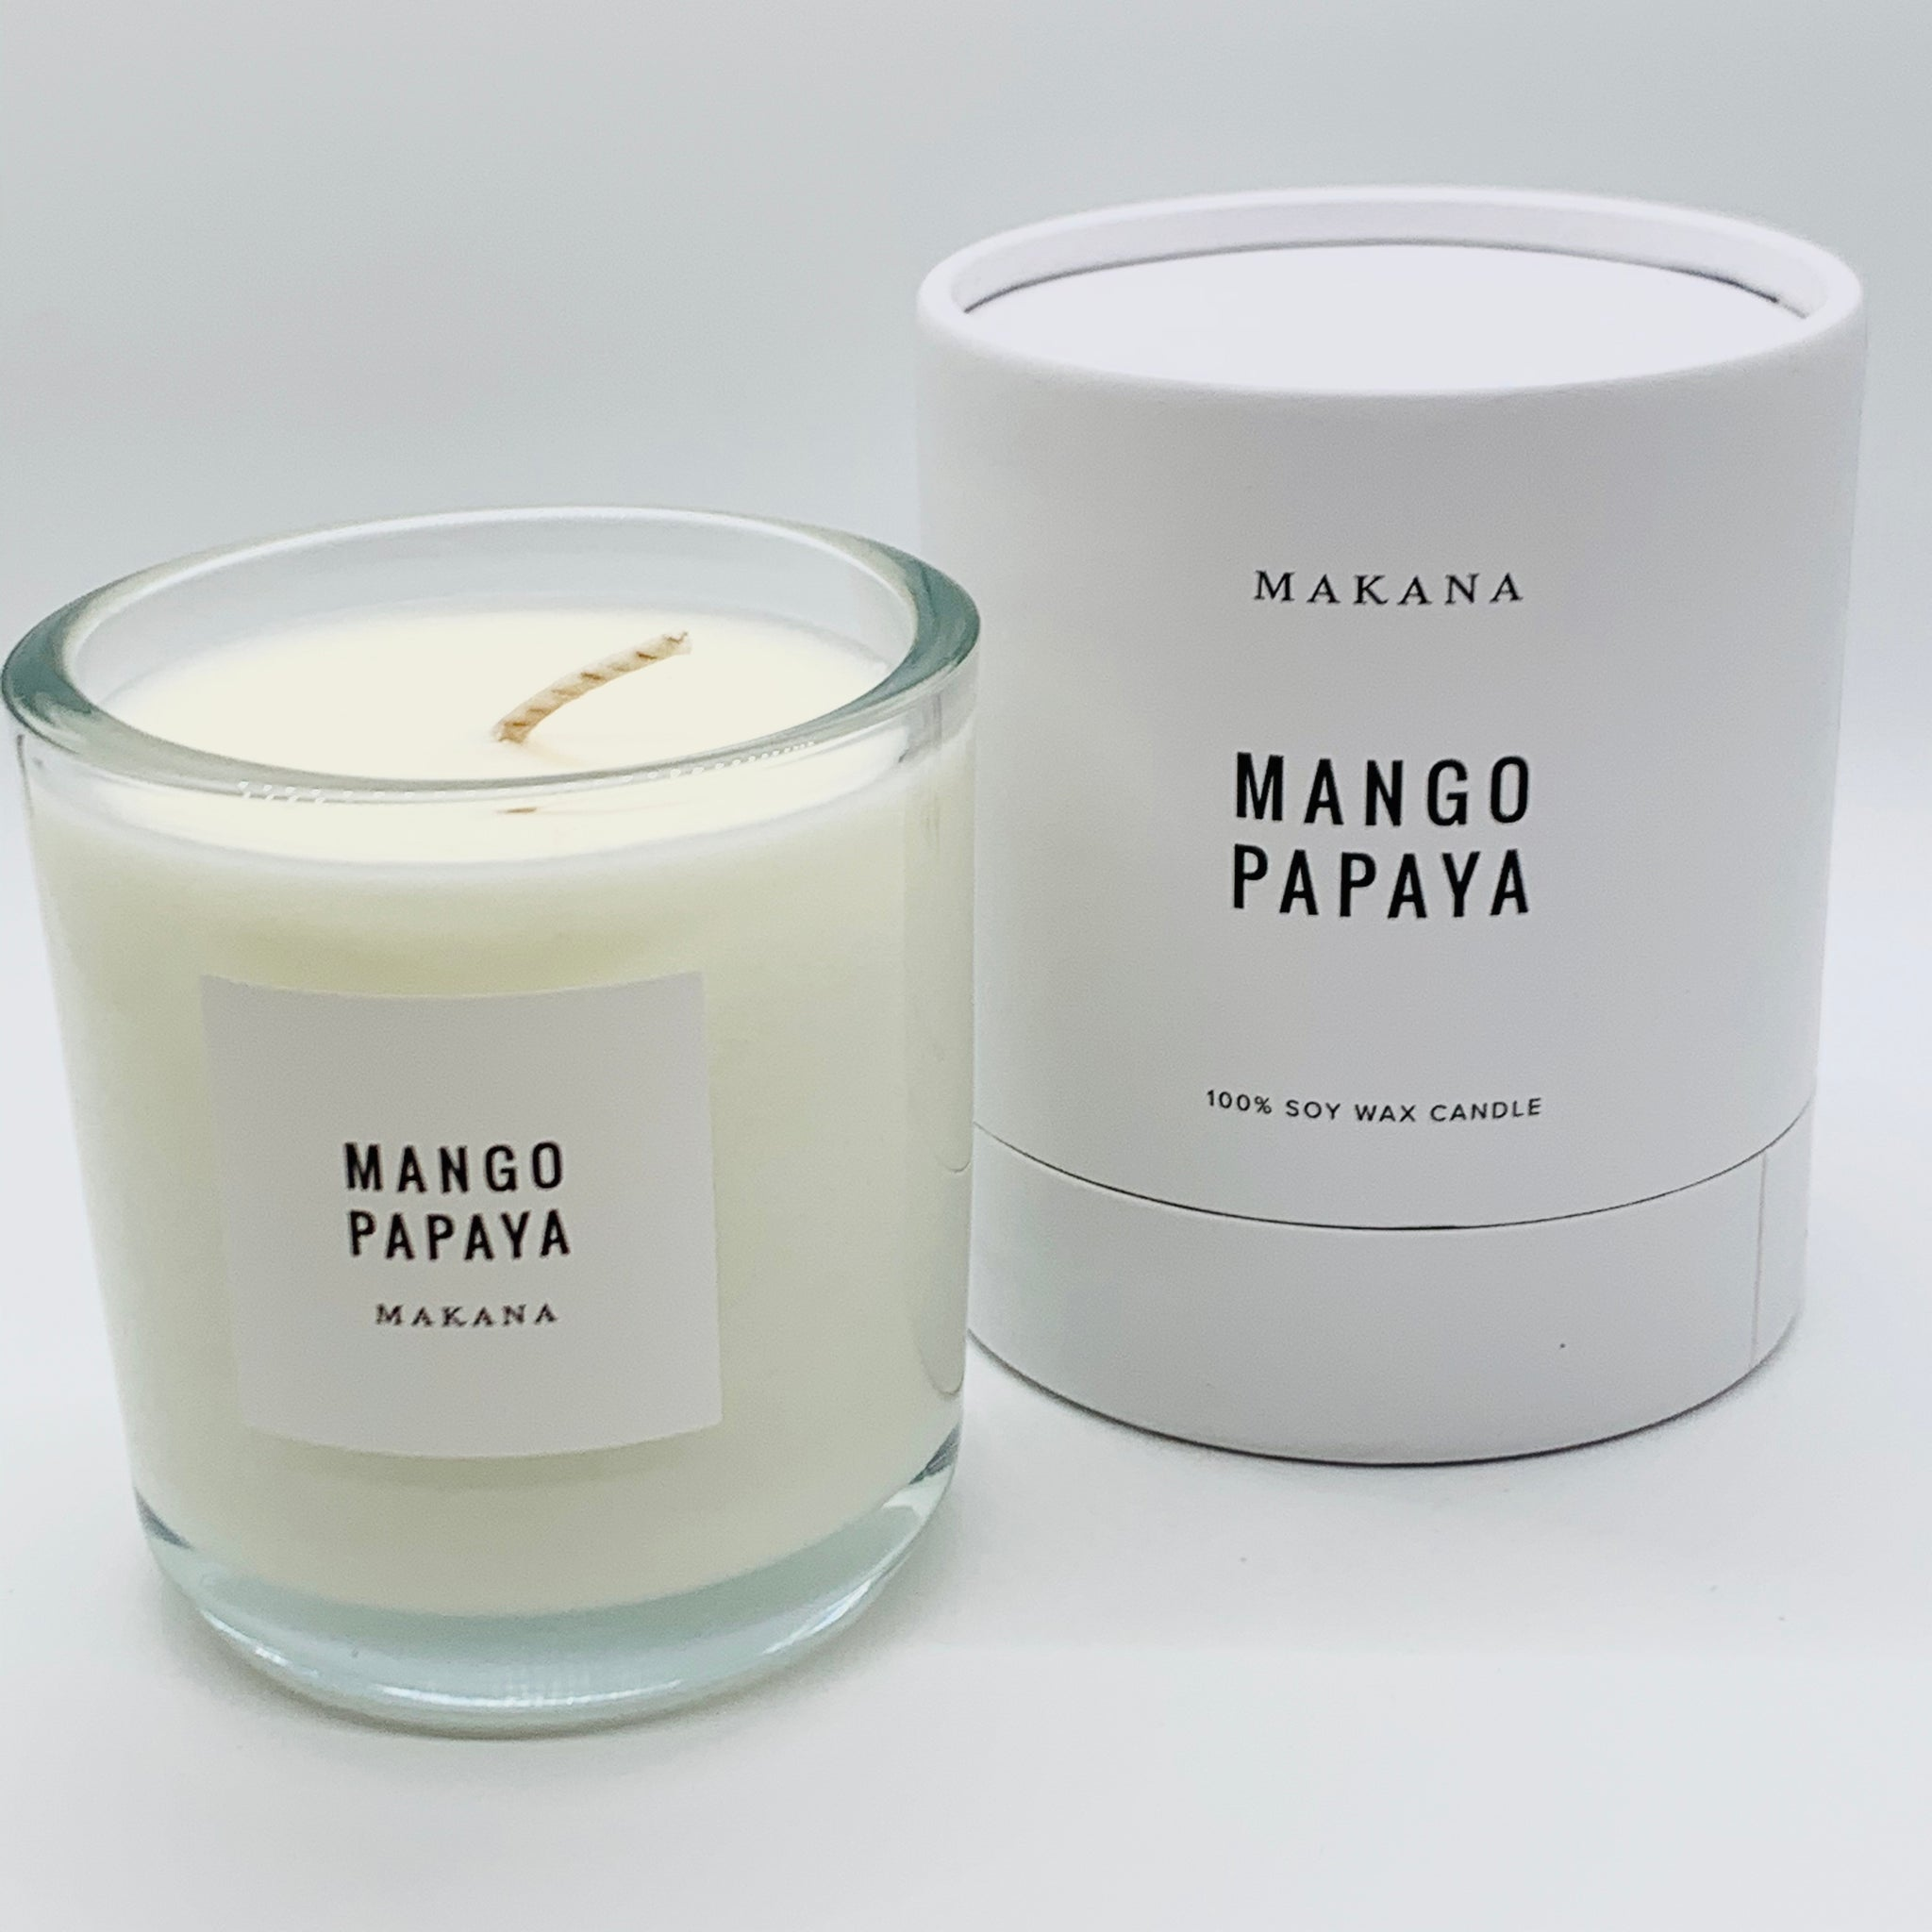 Mango Papaya Candle 10oz